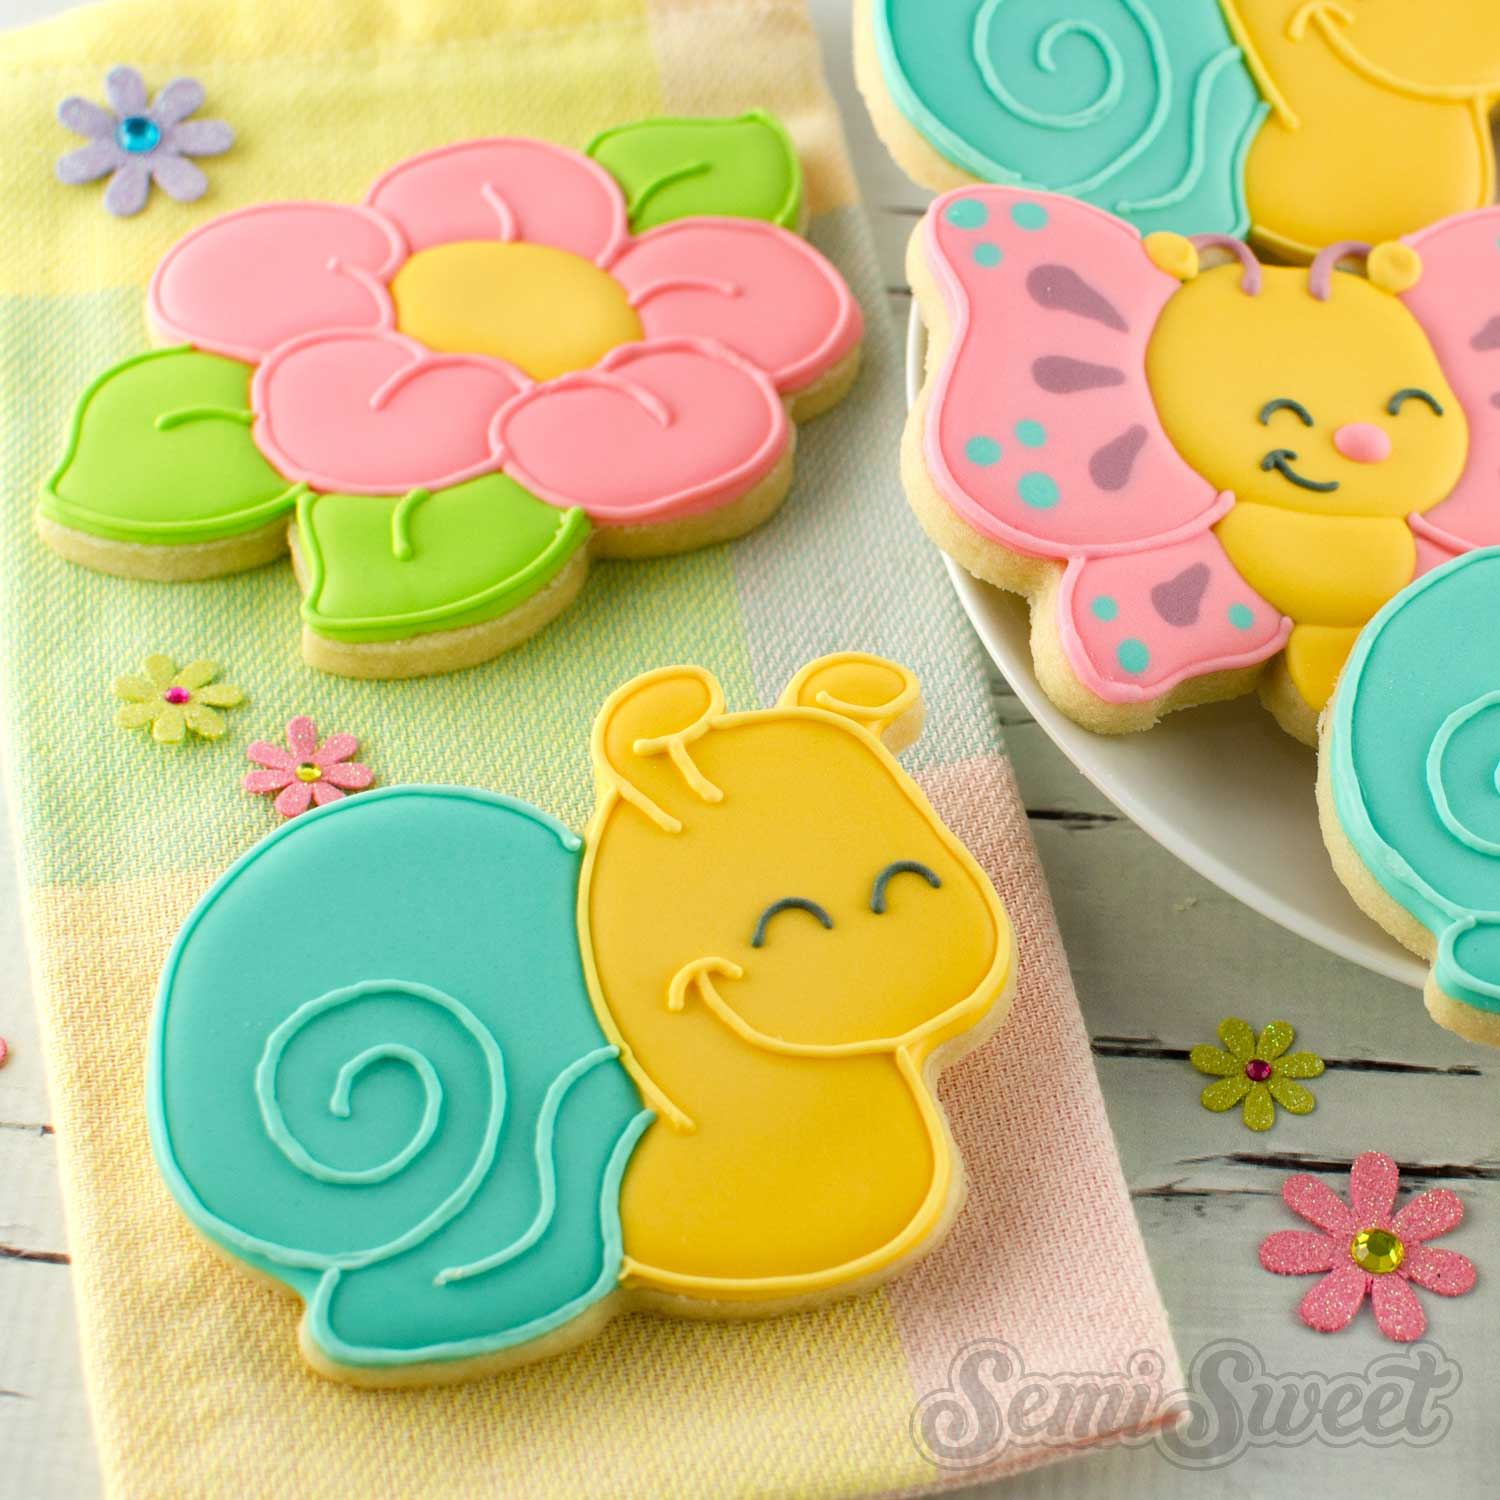 How to Make Snail Cookies